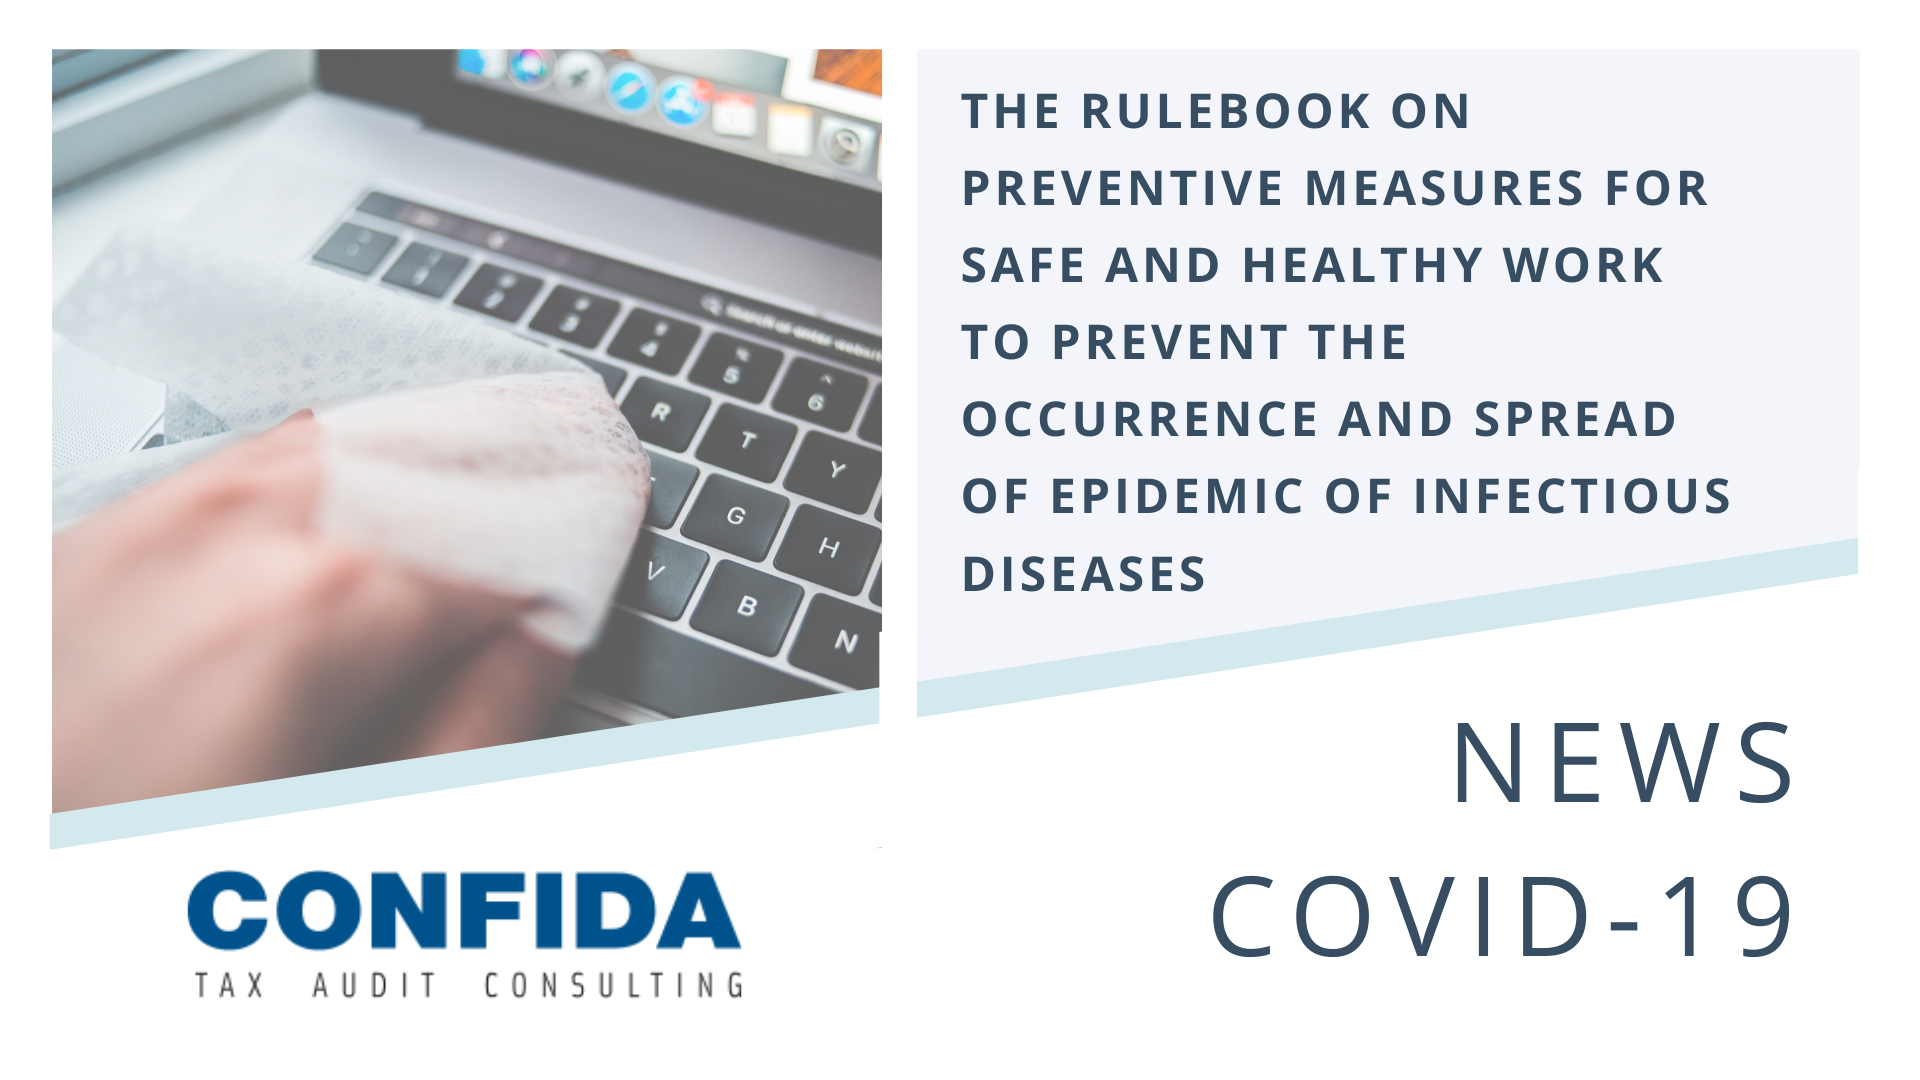 The Rulebook on Preventive Measures for Safe and Healthy Work to Prevent the Occurrence and Spread of Epidemic of Infectious Diseases